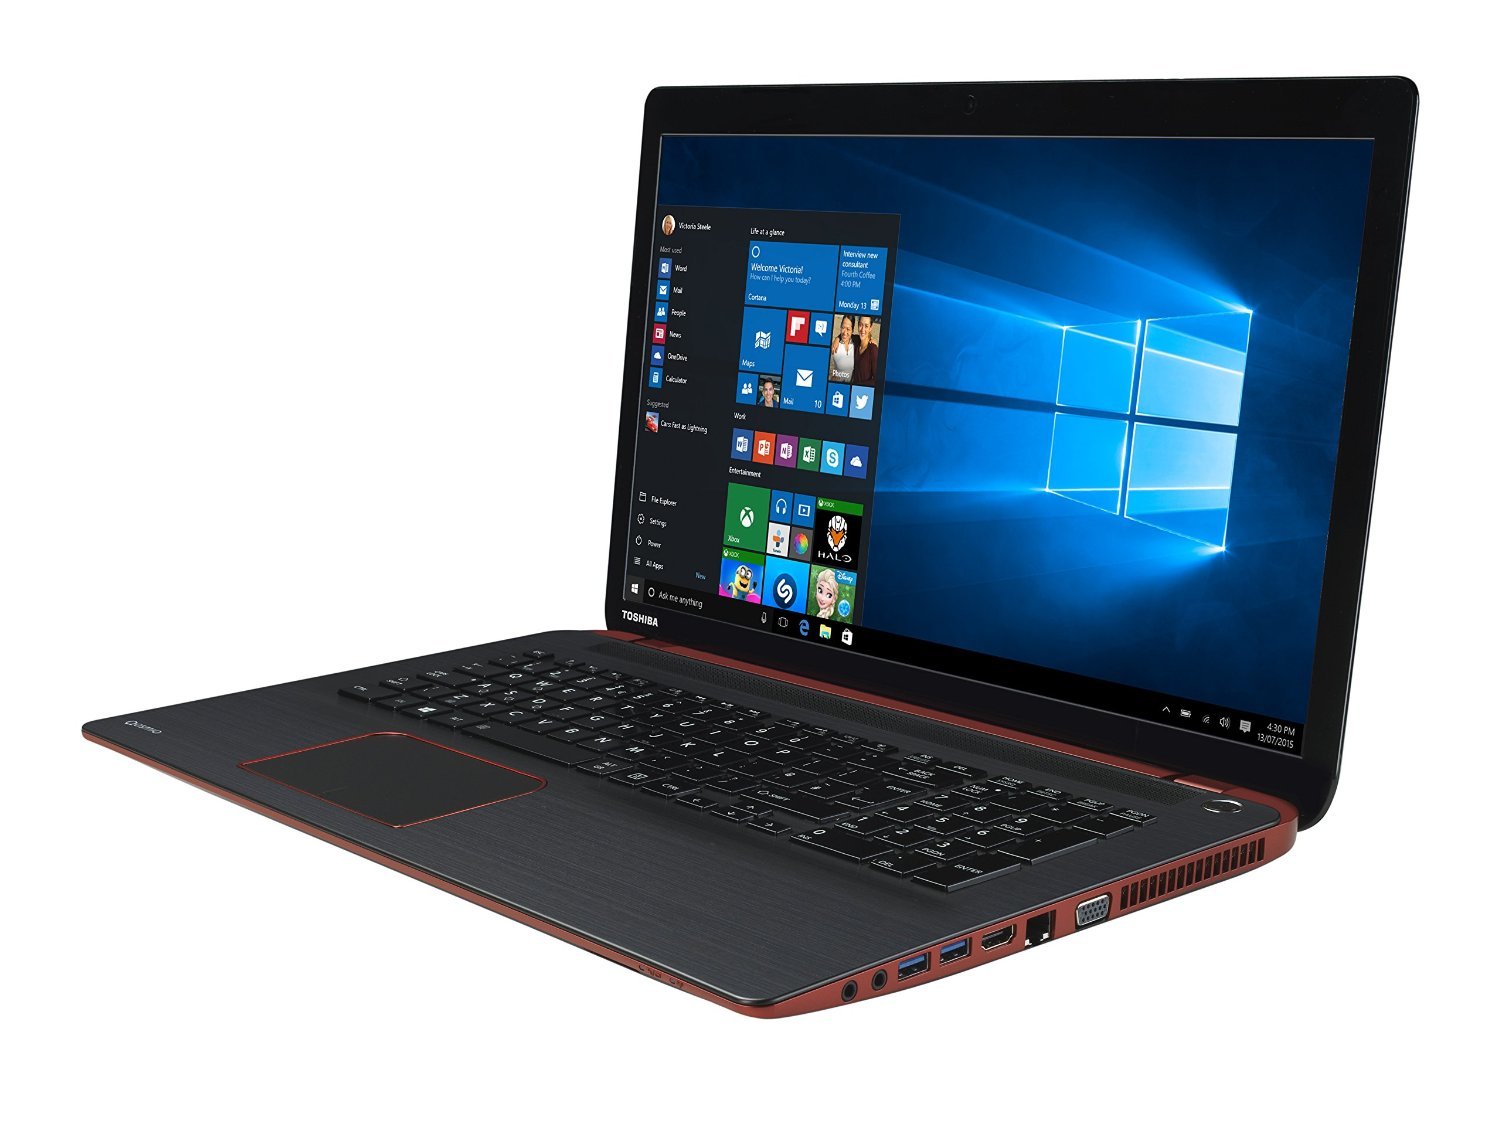 toshiba qosmio x70 b 10t 17 3 gaming laptop core i7 4720hq 16gb ram 1tb 8gb ssd ebay. Black Bedroom Furniture Sets. Home Design Ideas